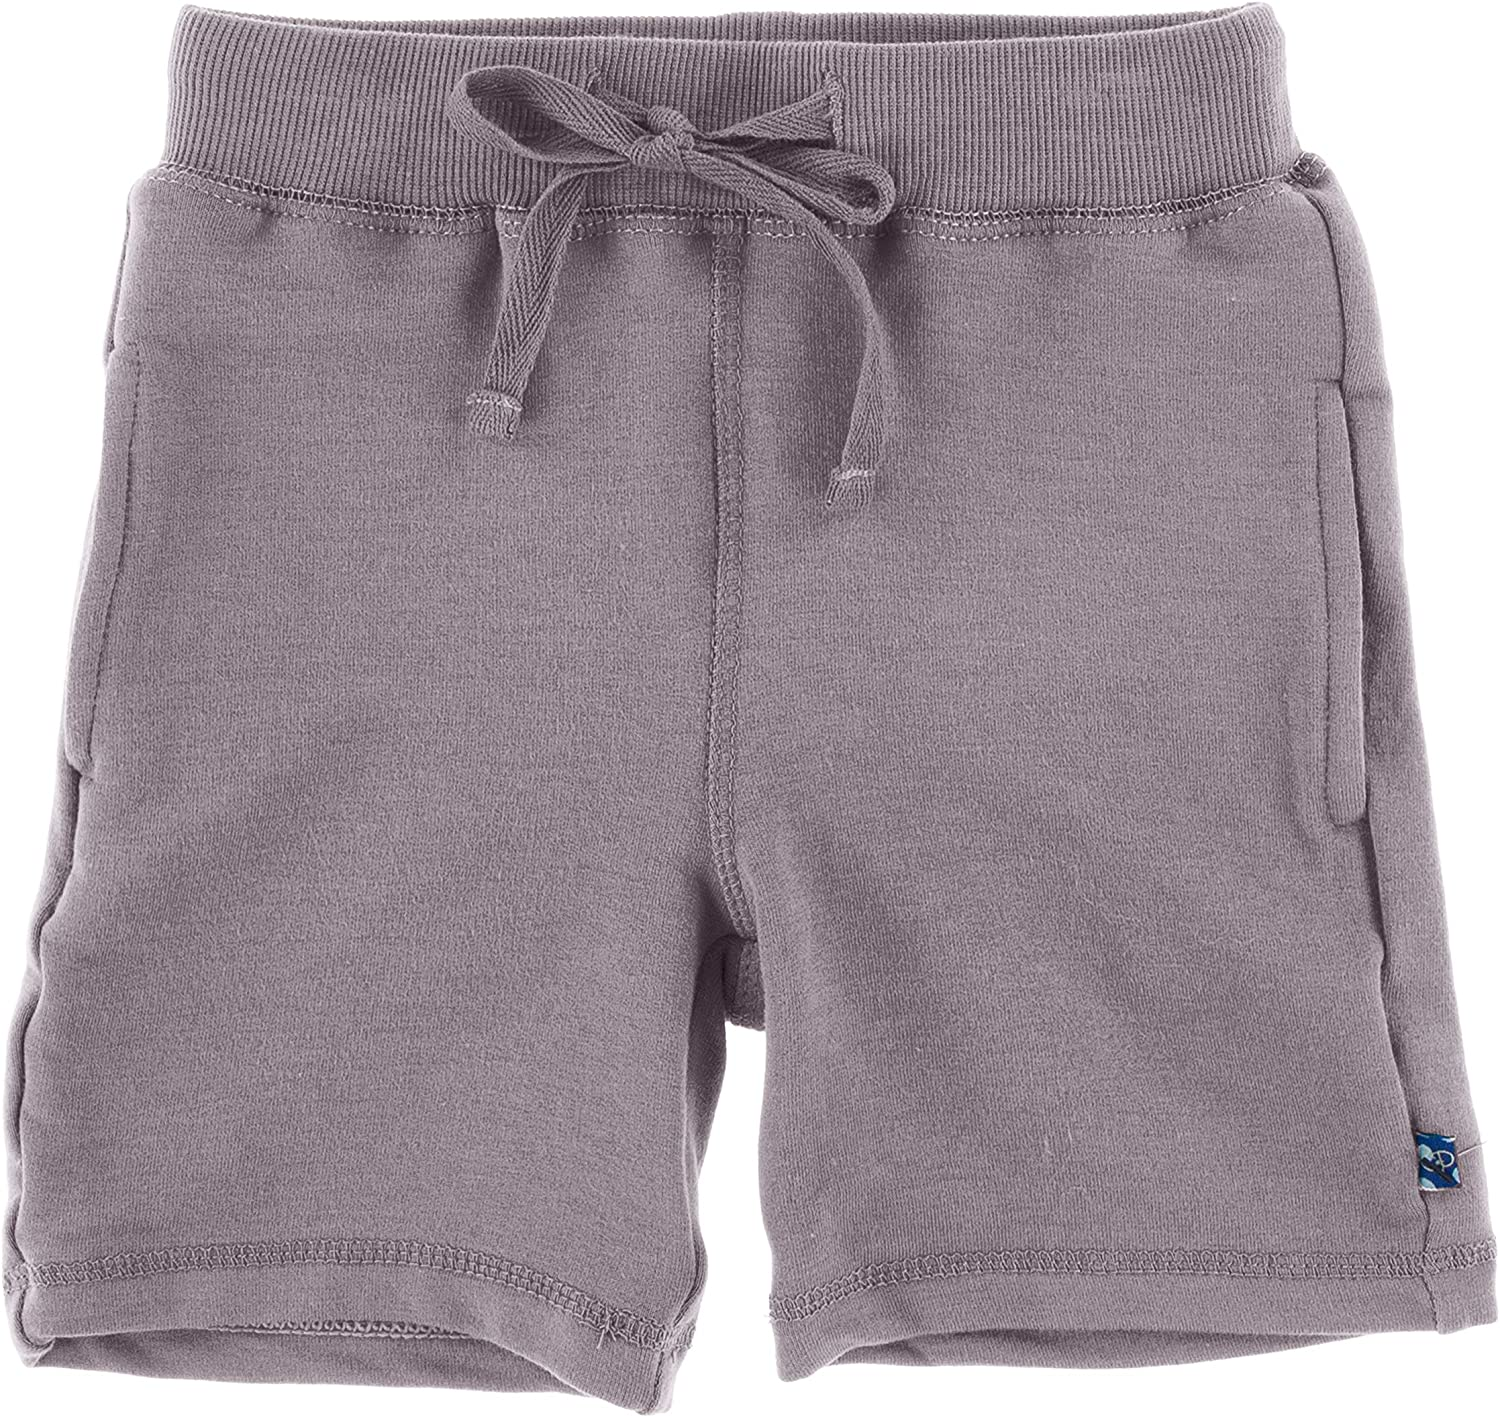 KicKee Pants Solid Fleece Sports Shorts, Easy Fit for All Day Wear